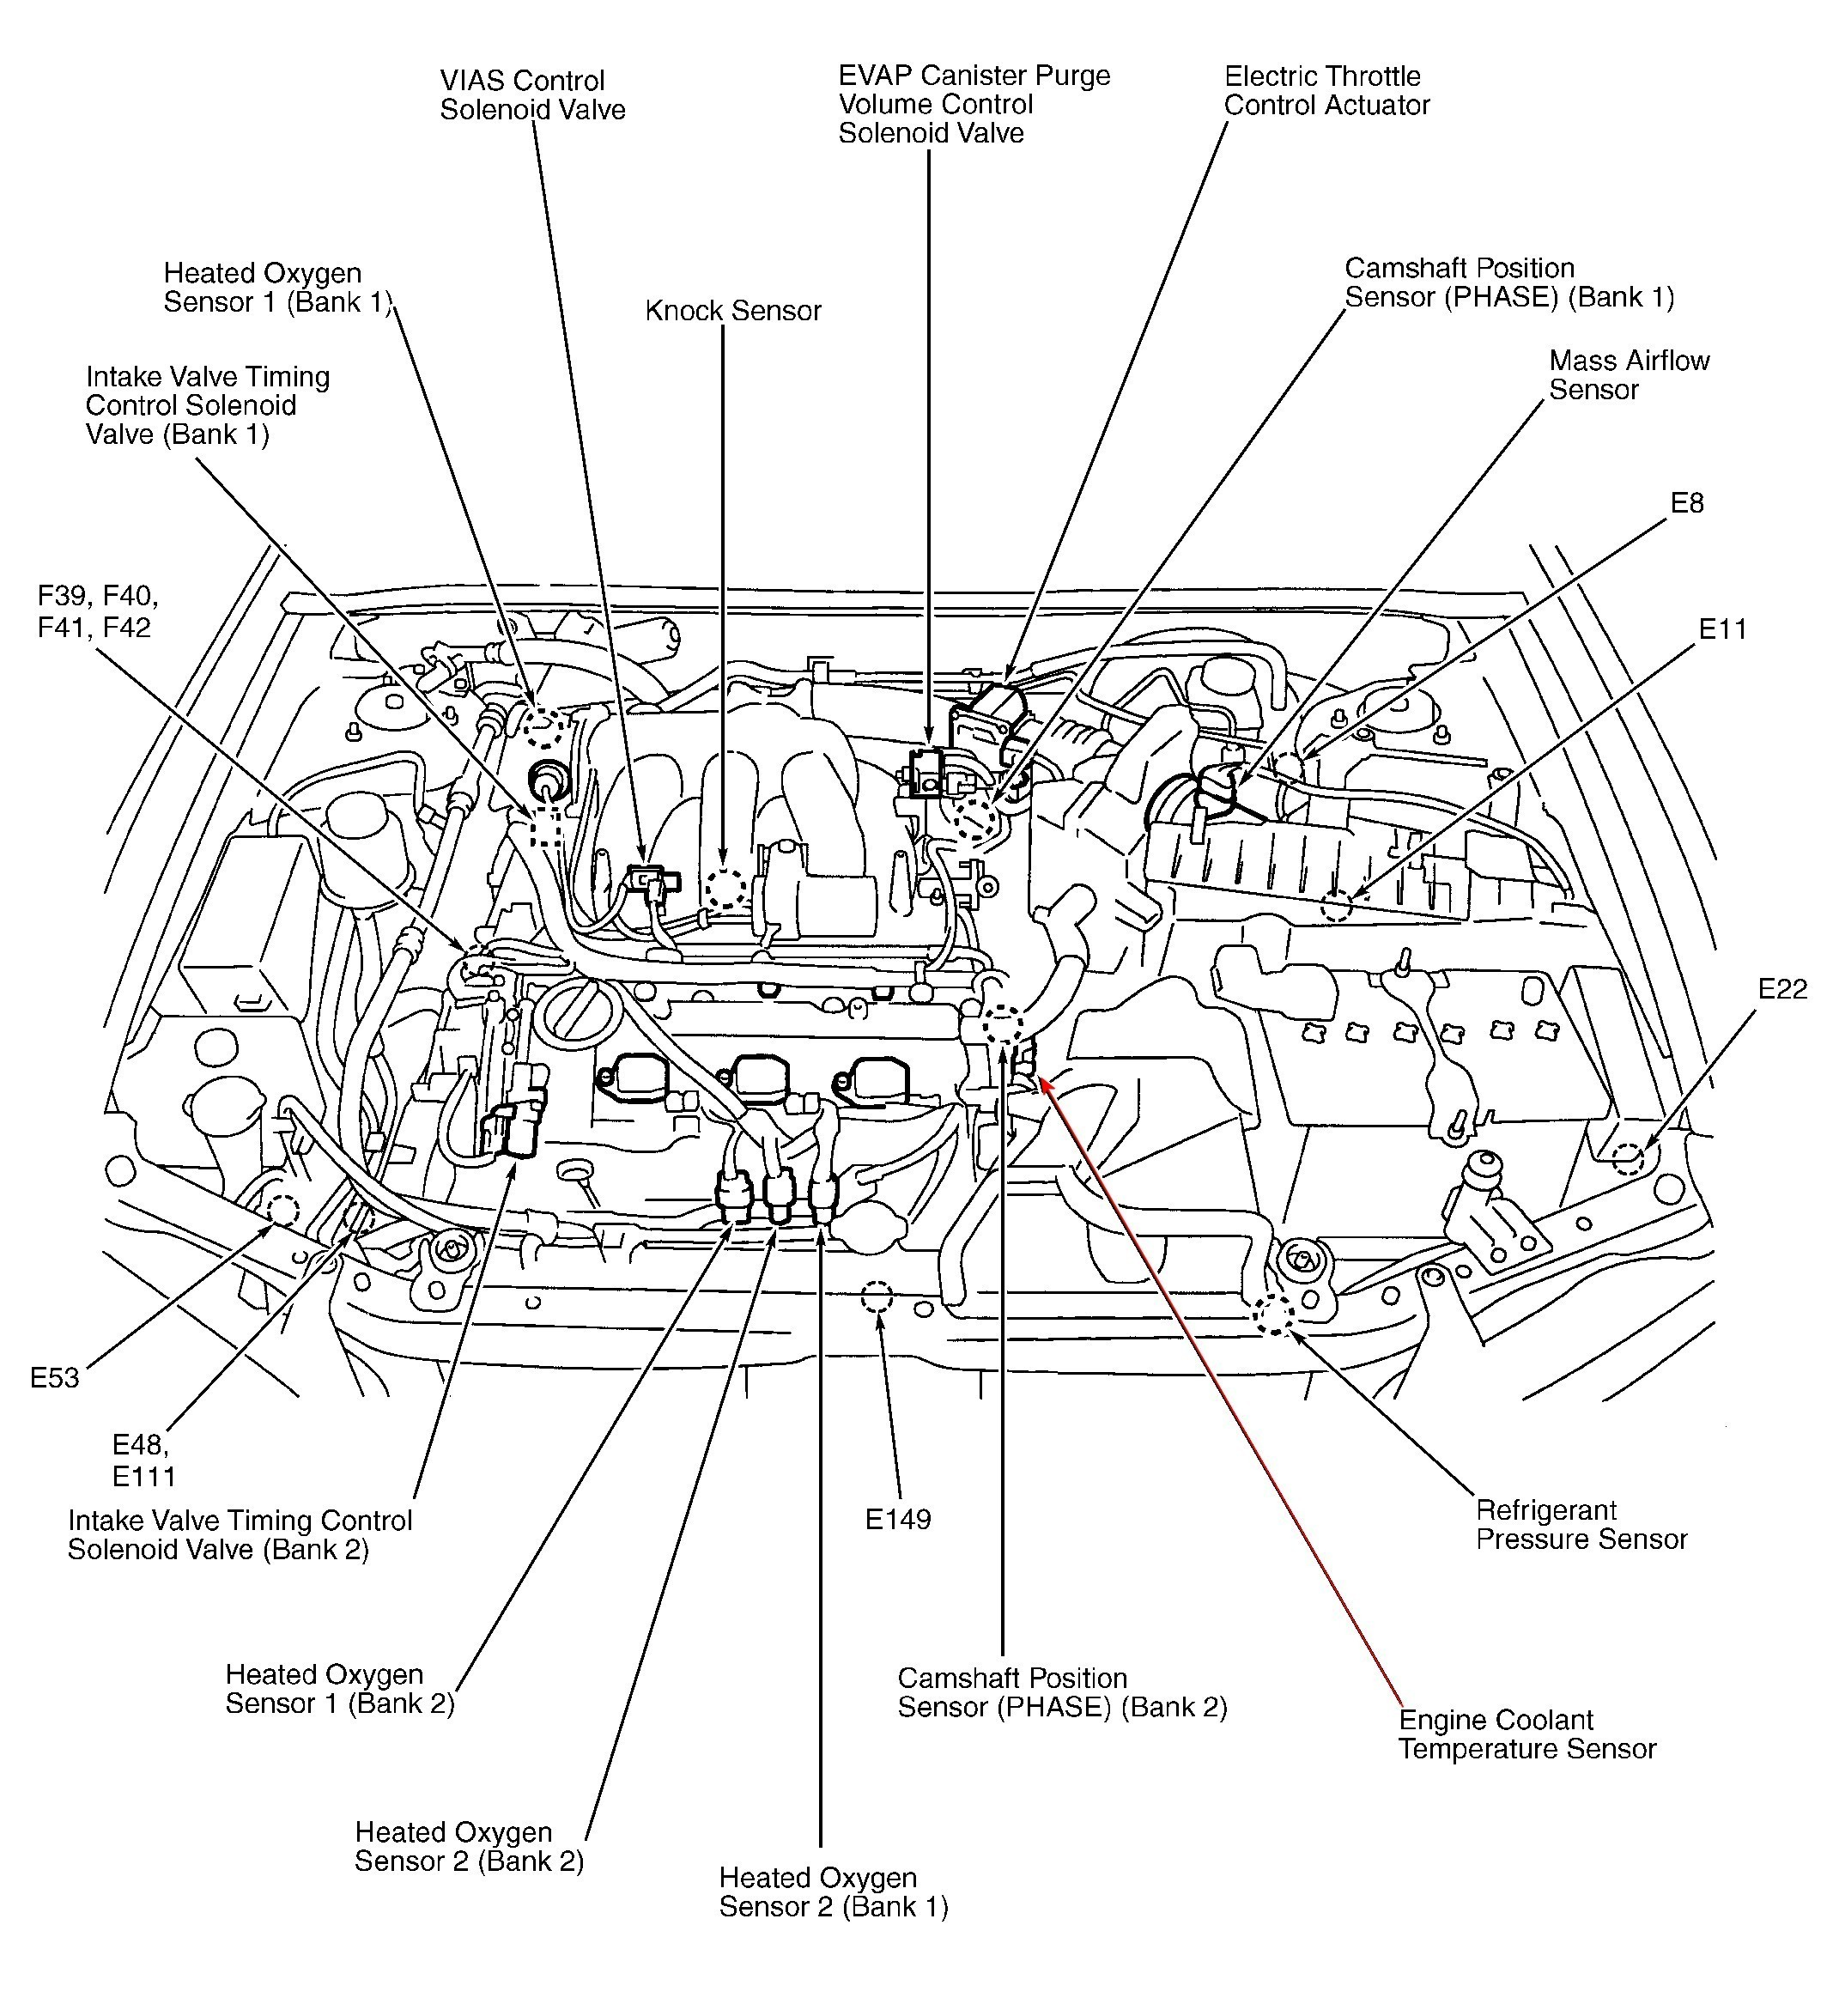 2000 Mercury Mountaineer Engine Diagram Cool Review About Mercury Villager 2000 with Extraordinary Gallery Of 2000 Mercury Mountaineer Engine Diagram